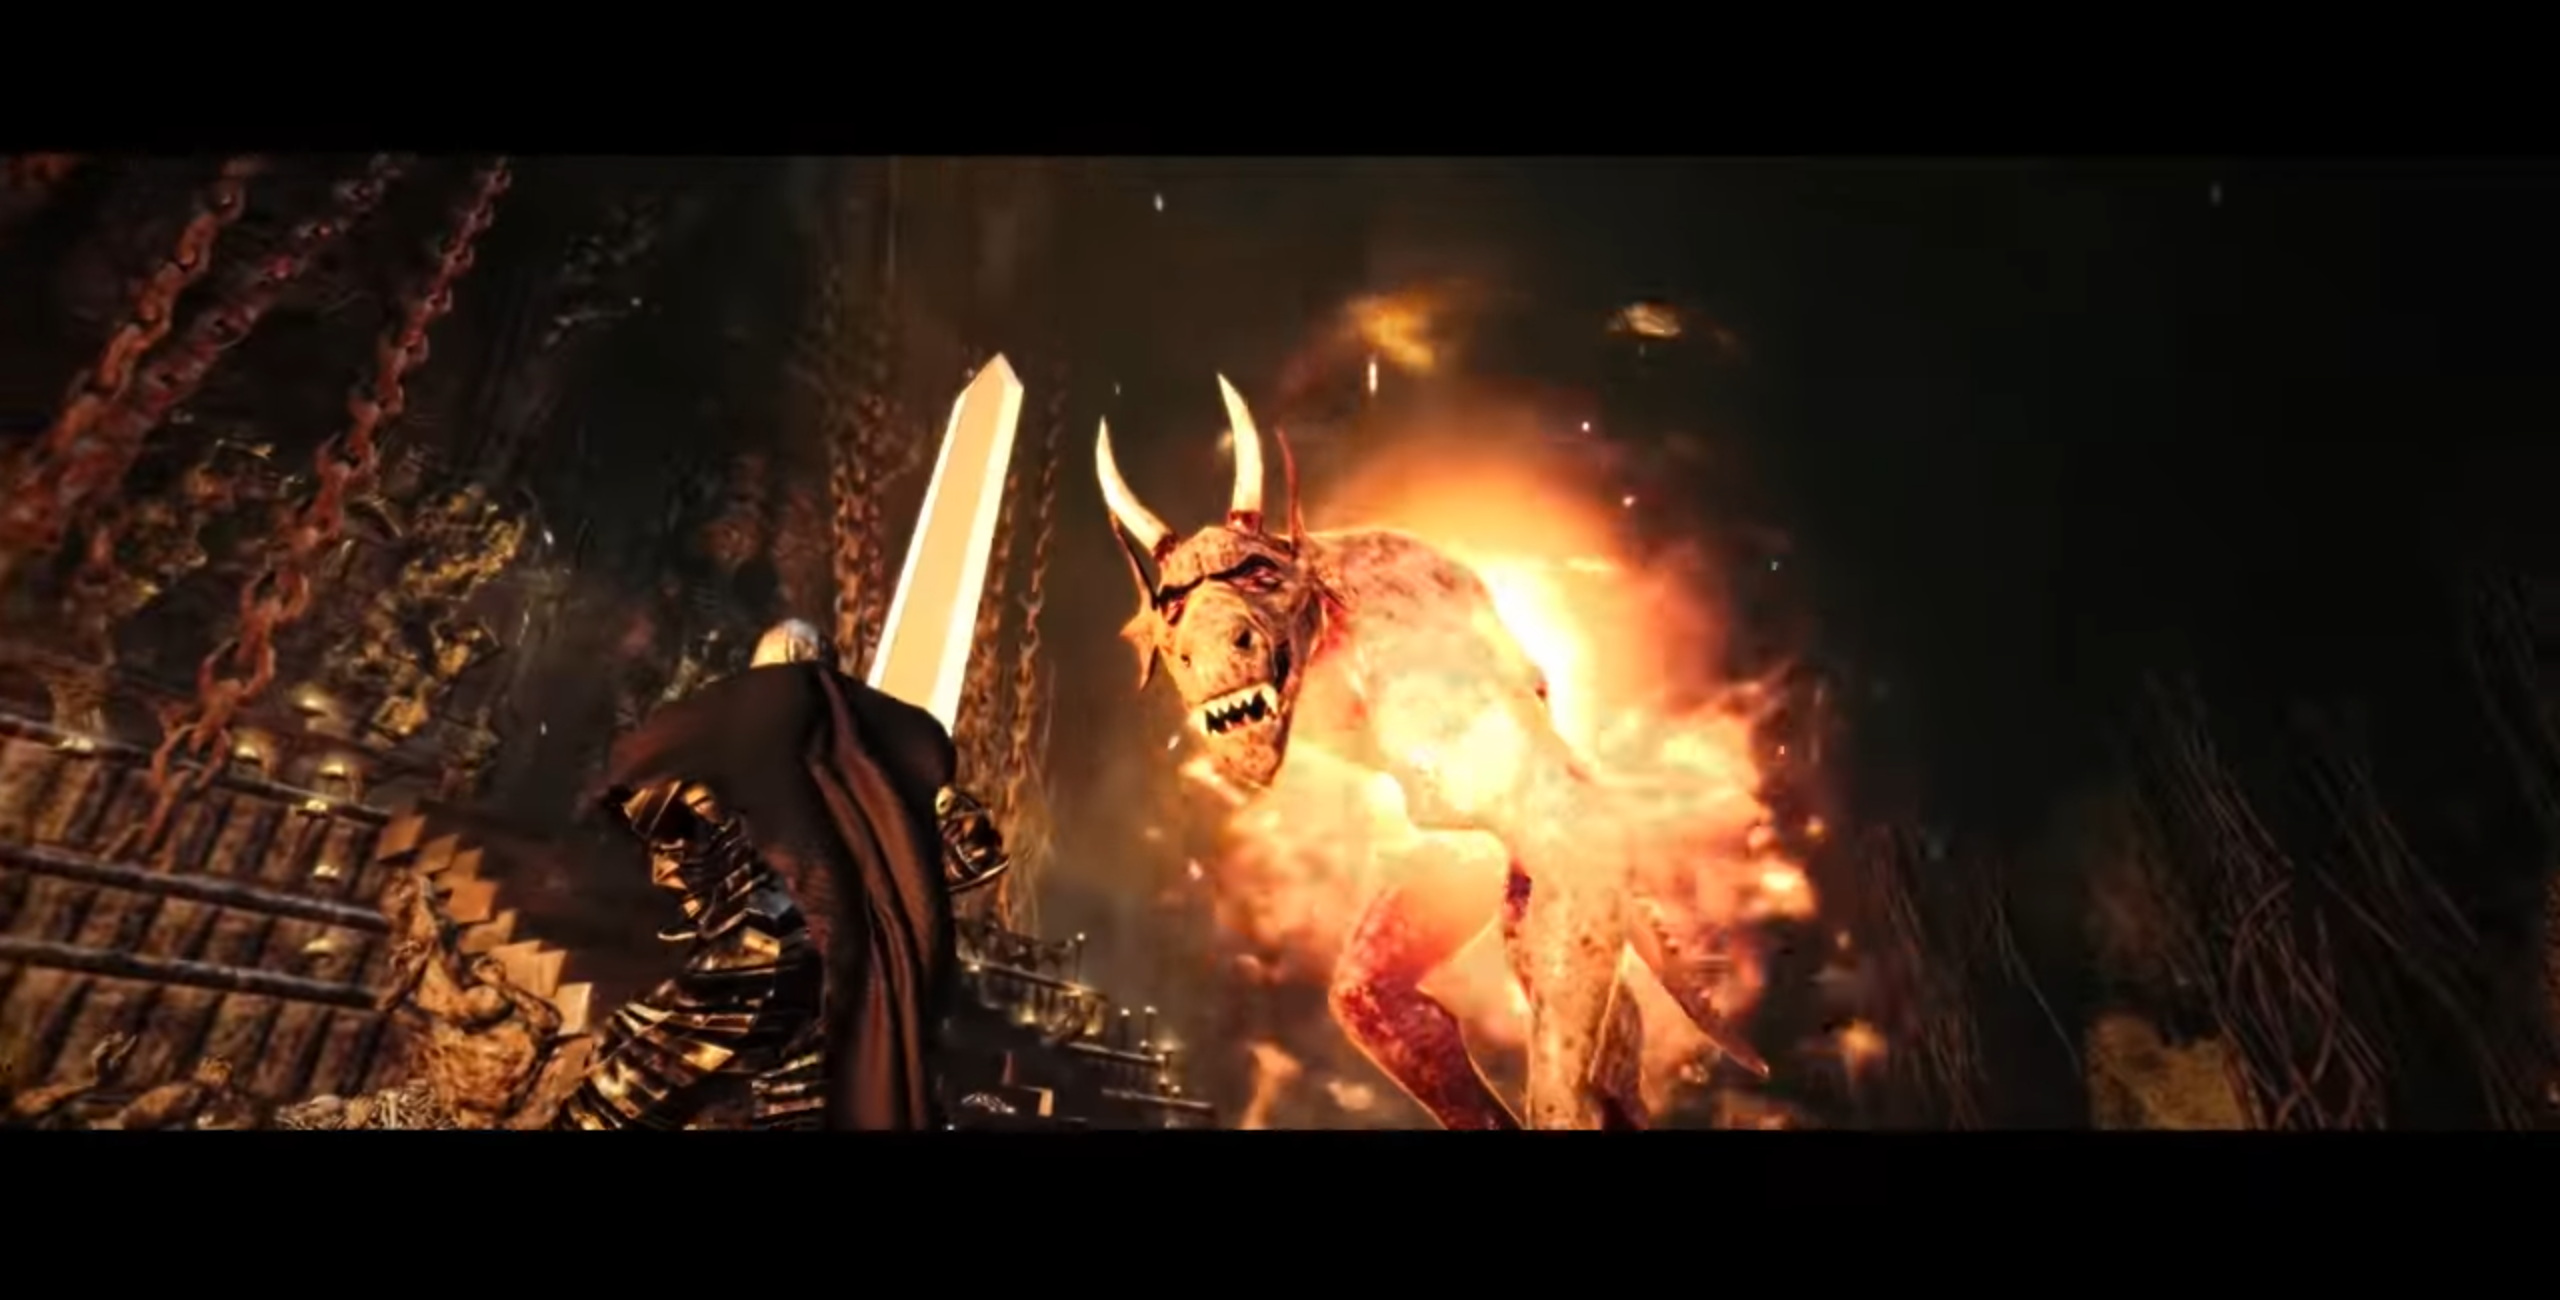 Here's a dope, eldritch trailer for Skyrim expansion mod Apotheosis